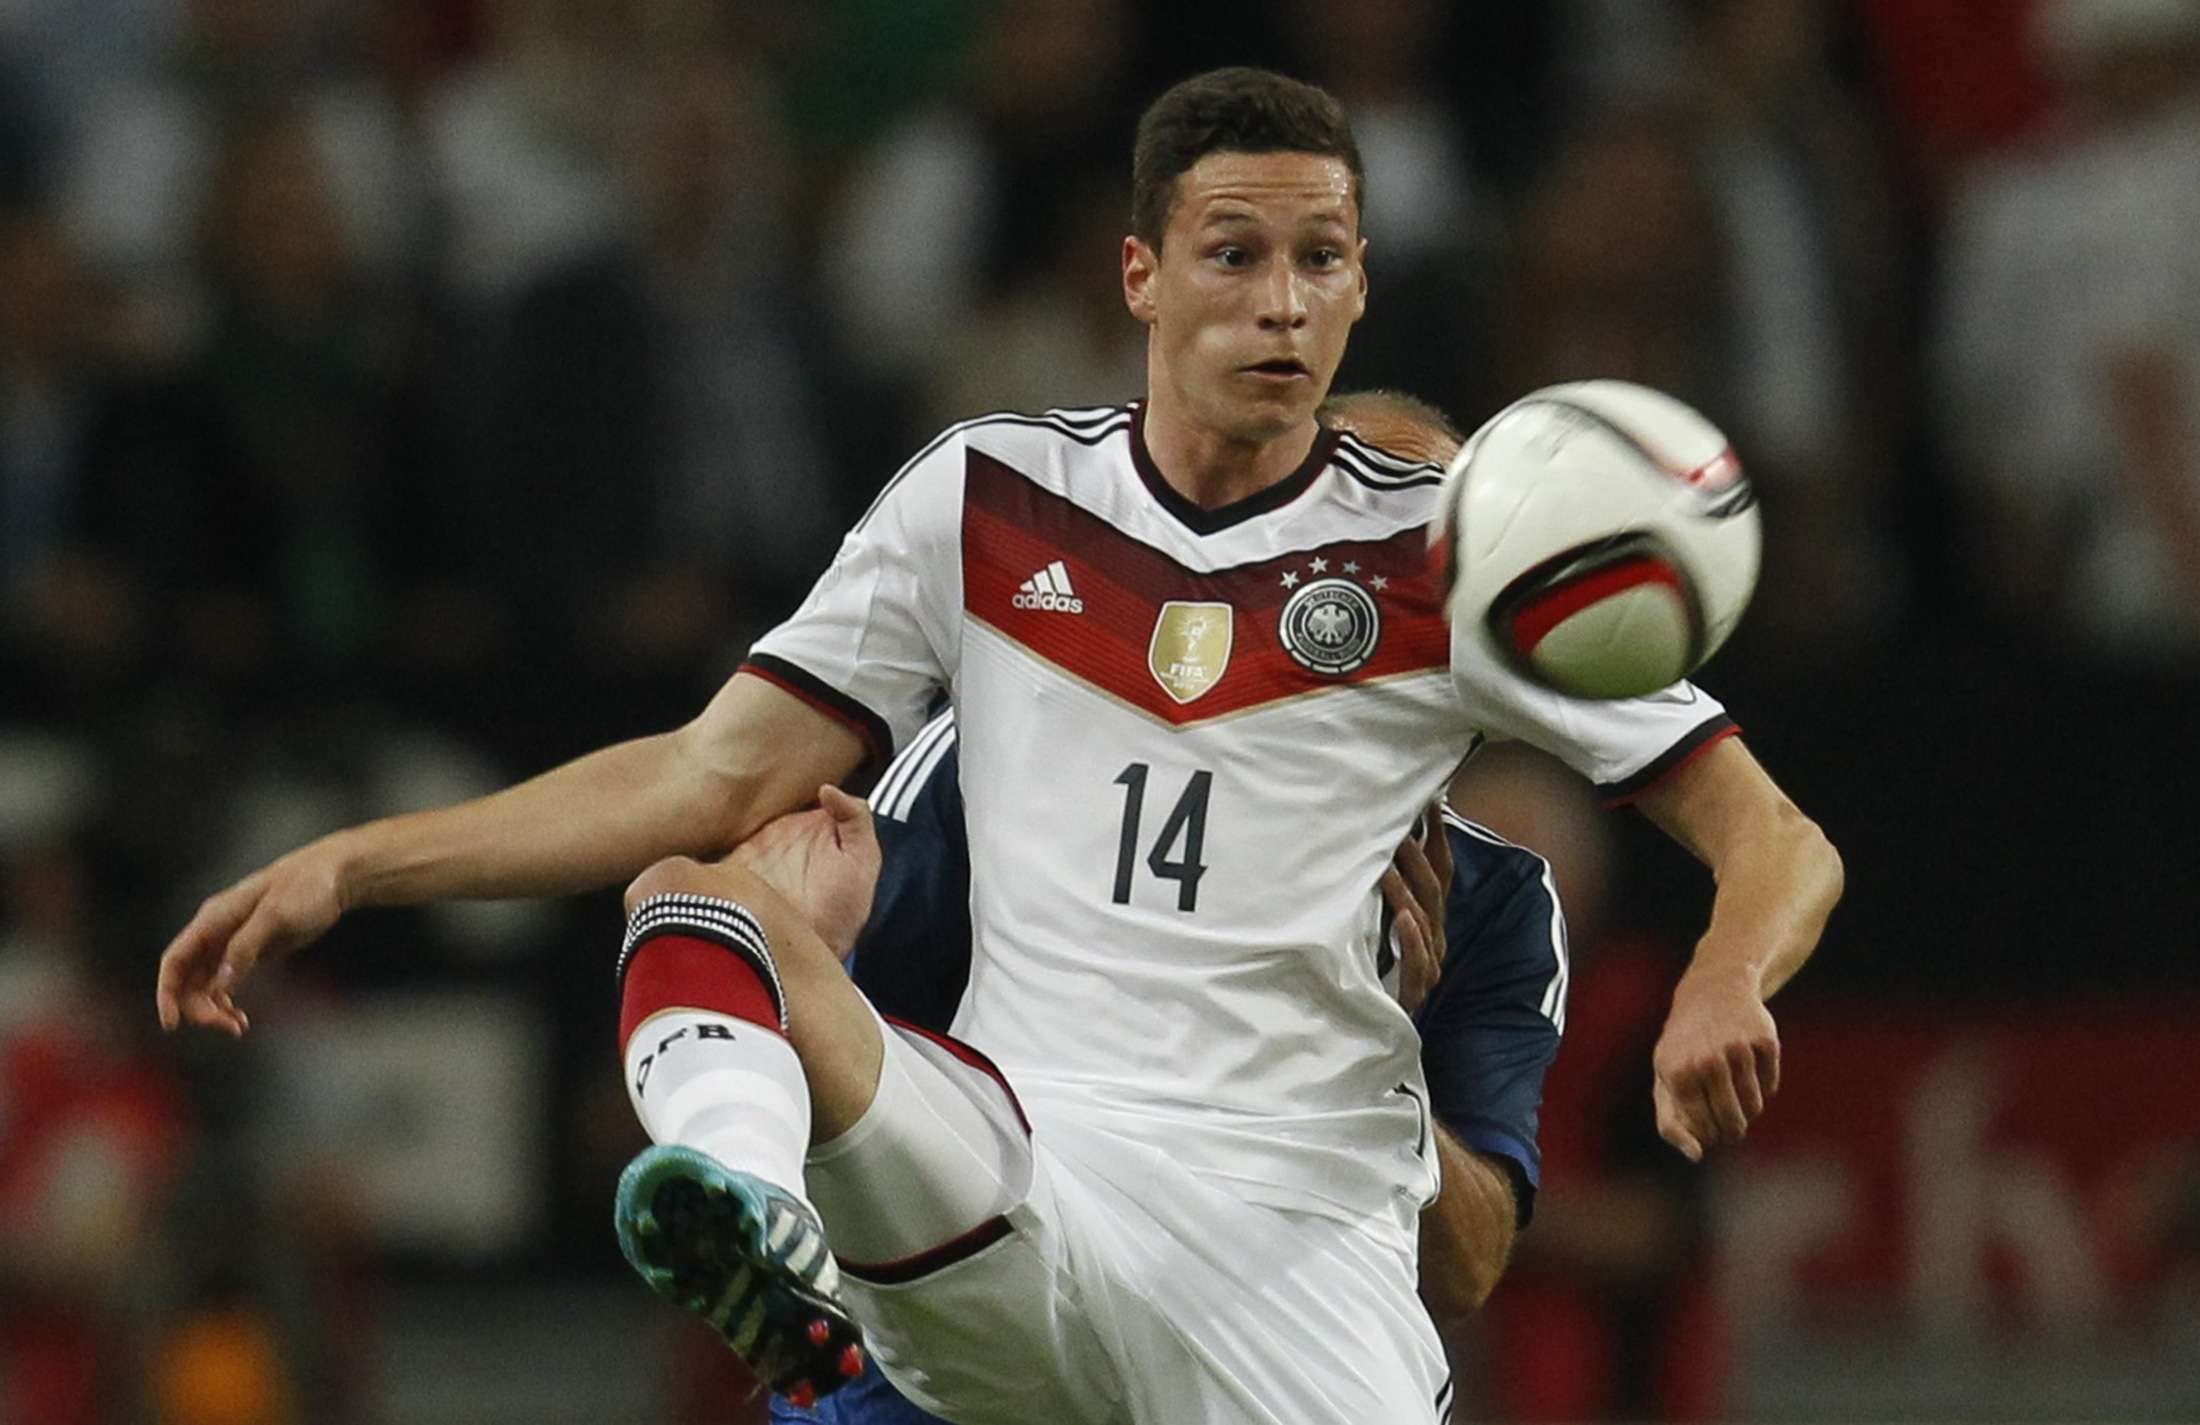 Germany's Julian Draxler controls the ball during a friendly soccer match against Argentina in Duesseldorf September 3, 2014. REUTERS/Ina Fassbender (GERMANY - Tags: SPORT SOCCER) Foto: INA FASSBENDER/REUTERS